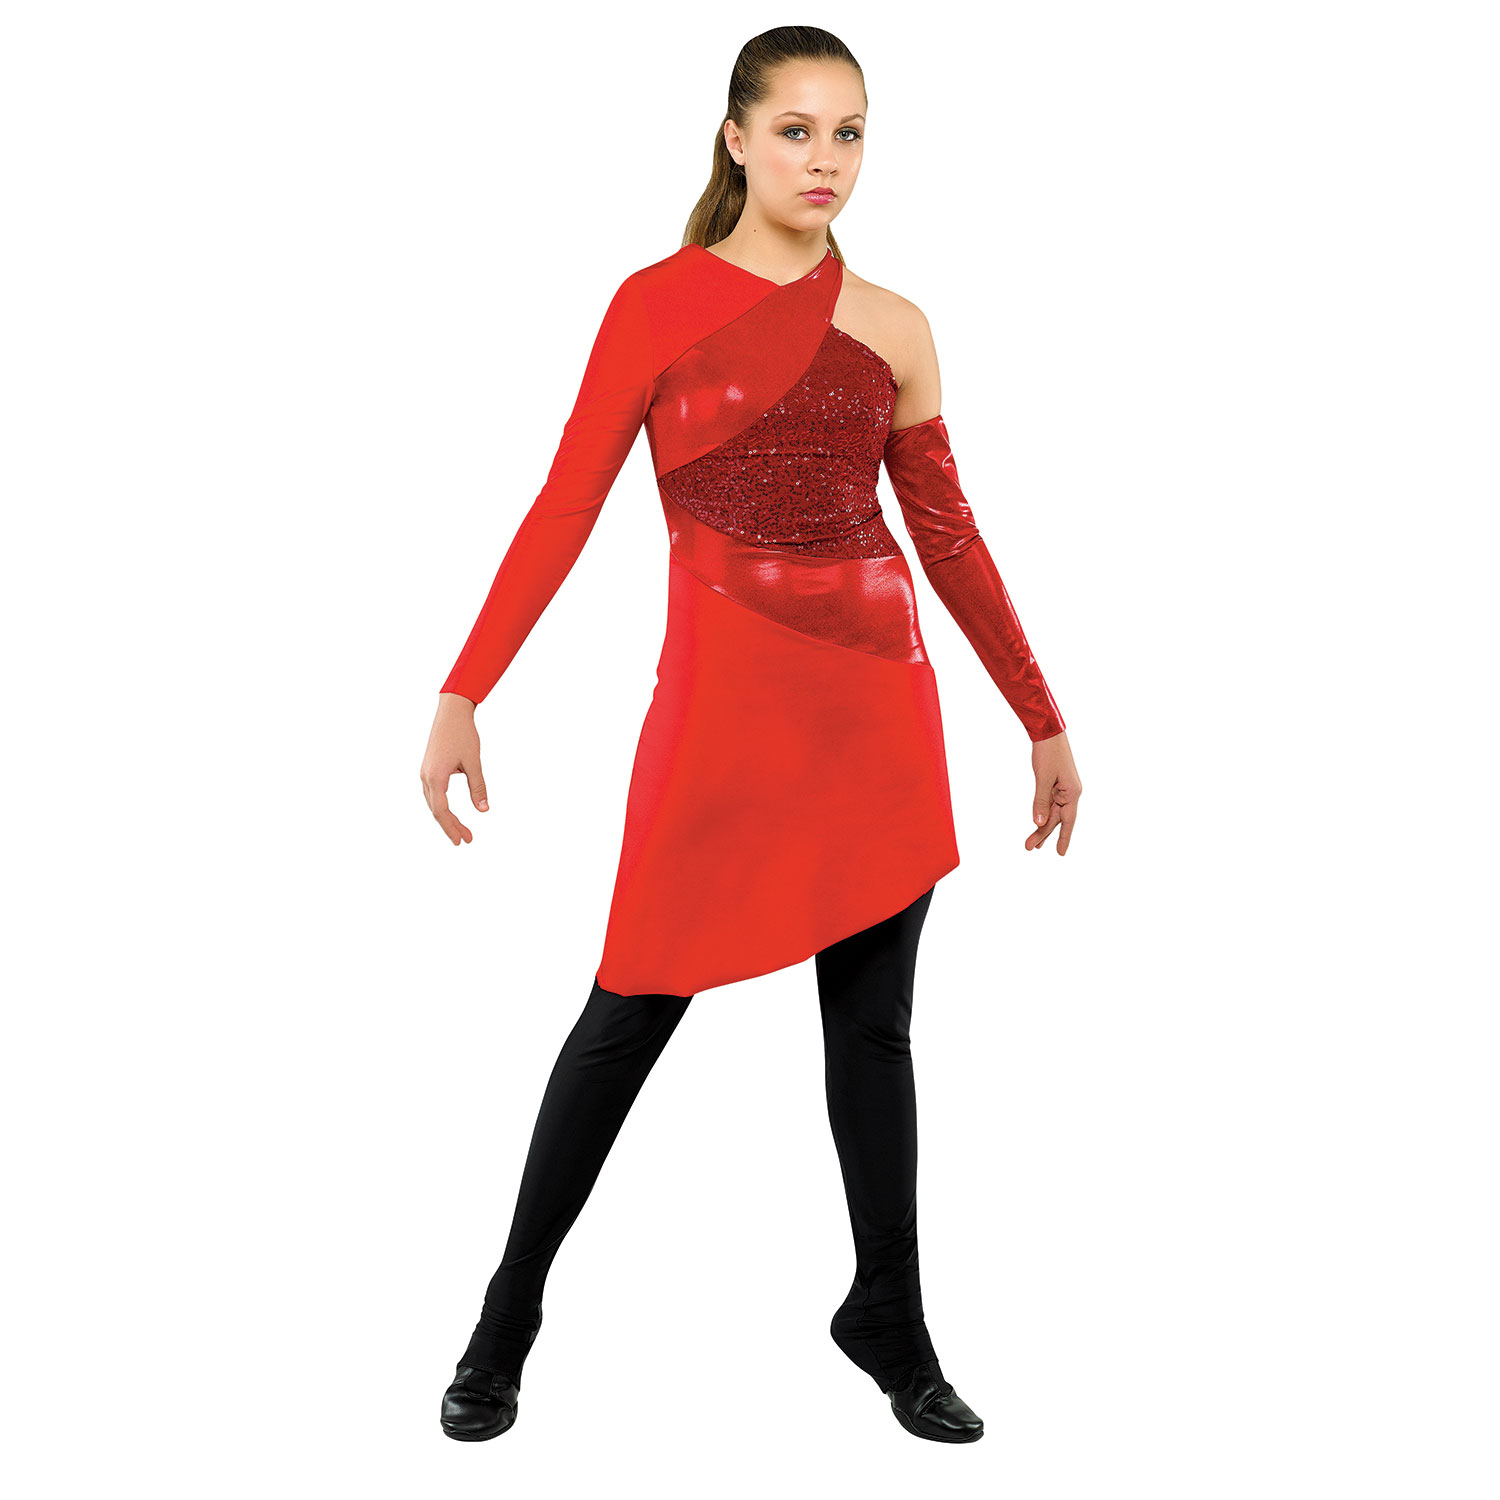 Guard Uniforms: Style 5008